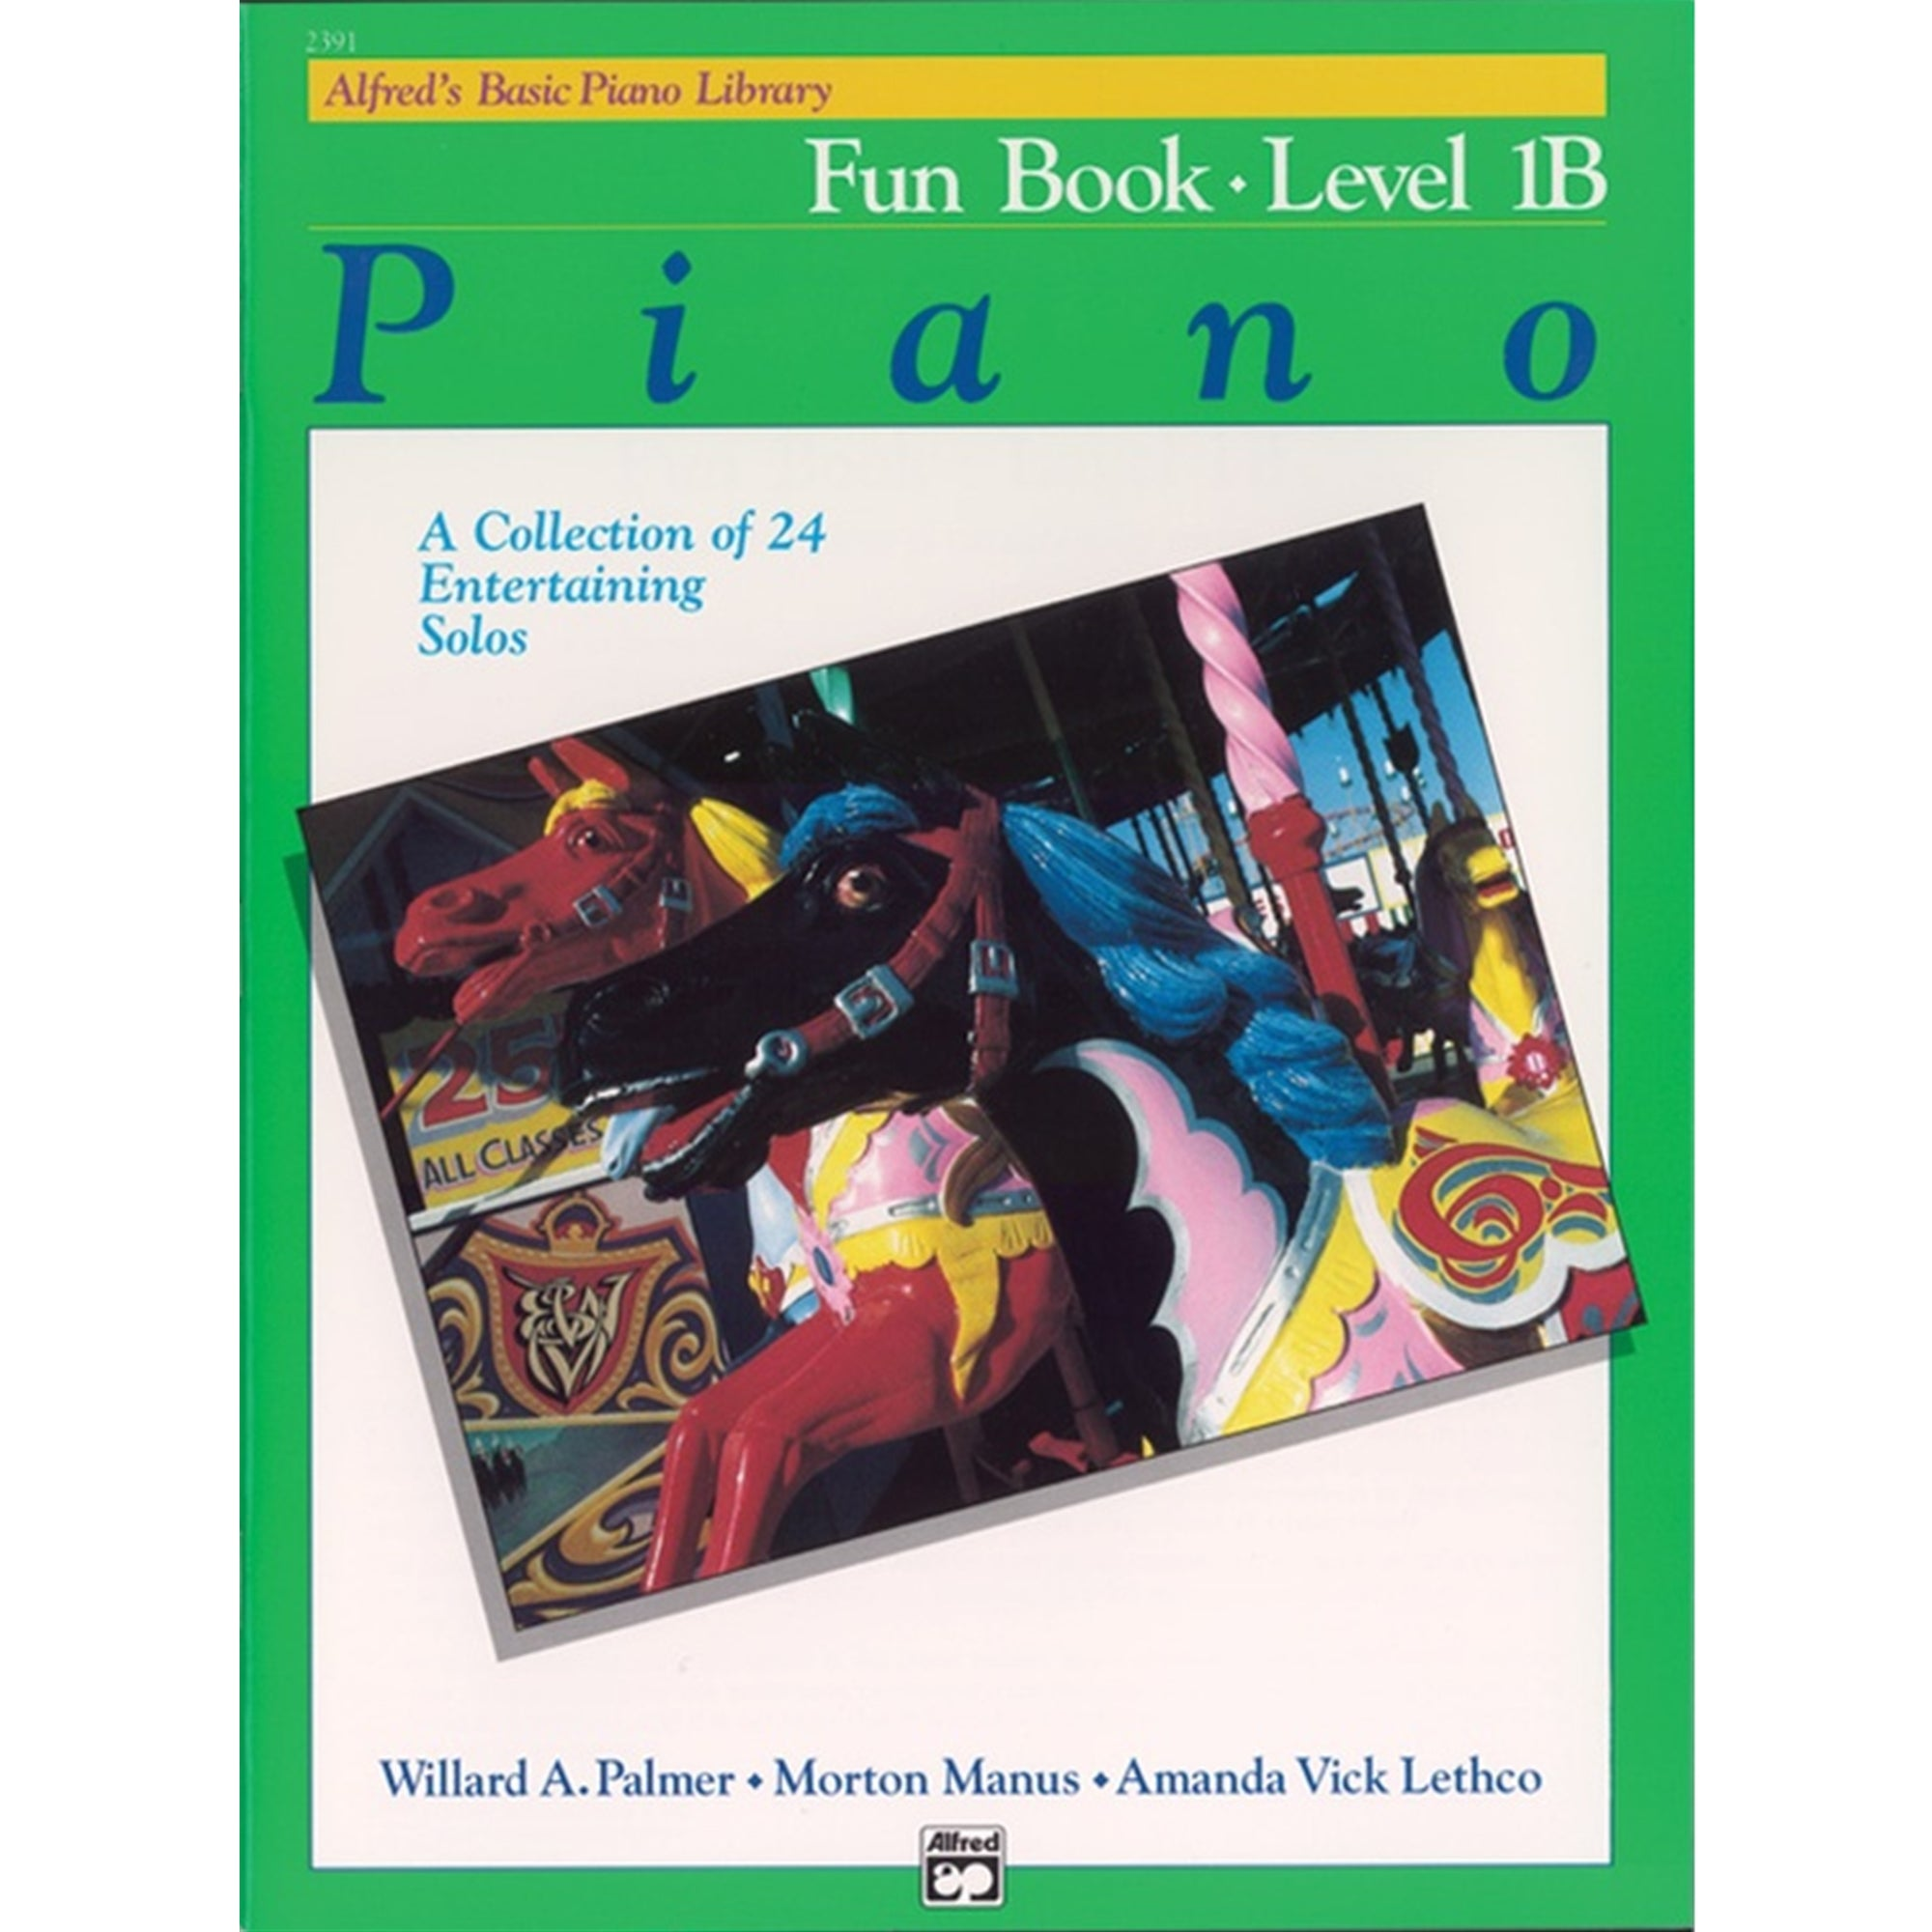 ALFRED 2391 Alfred's Basic Piano Library: Fun Book 1B